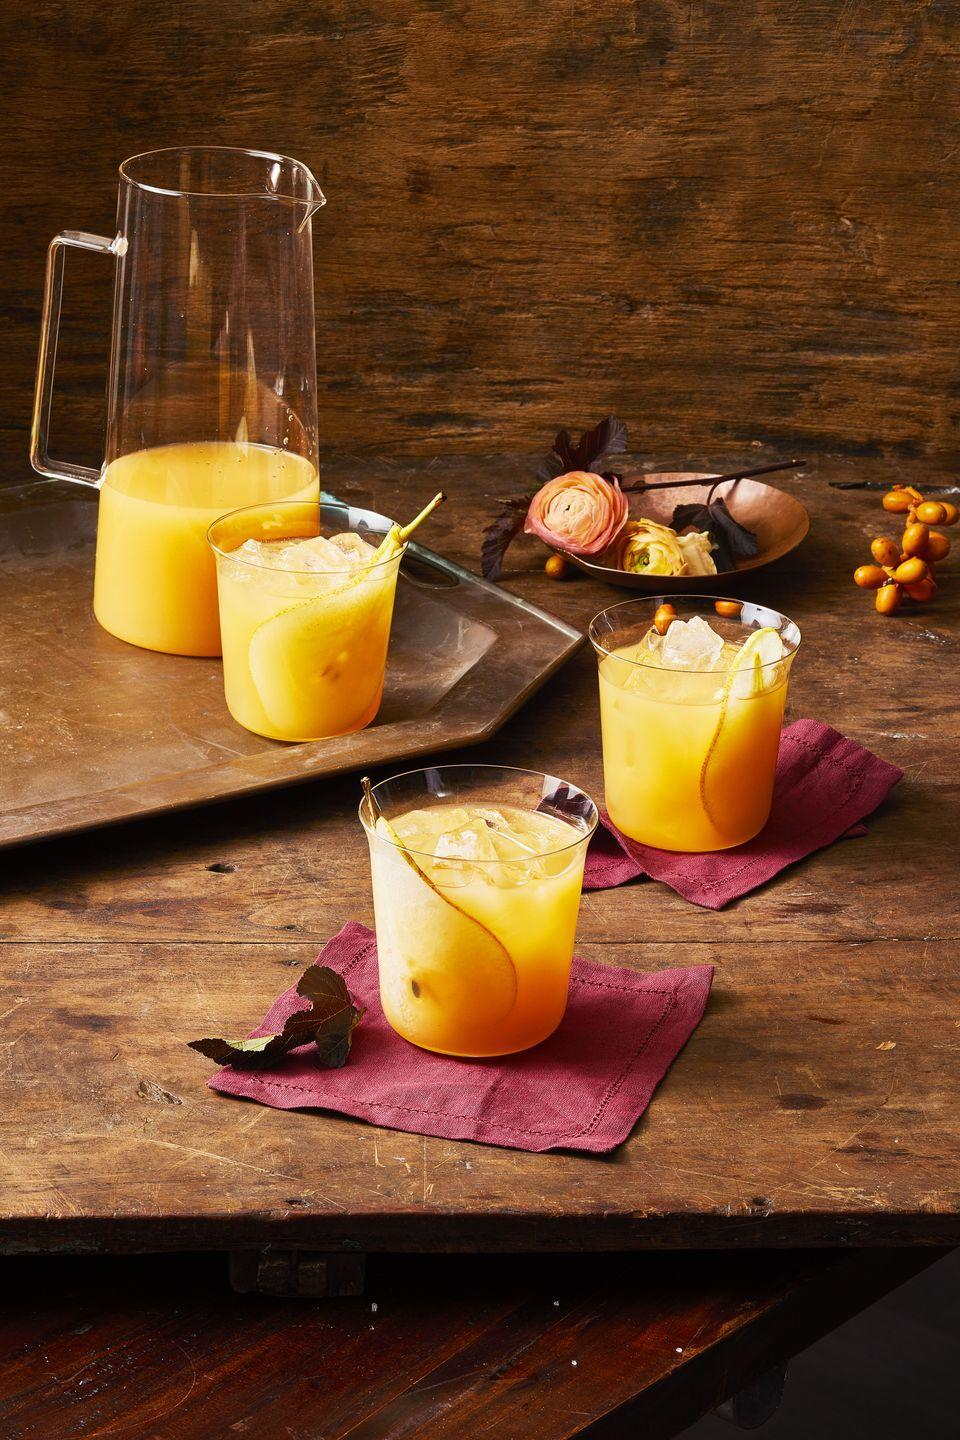 """<p>Sweet pear nectar gets kicked-up with spiced rum and ginger beer. Talk about a one-two punch.</p><p><em><a href=""""https://www.goodhousekeeping.com/food-recipes/party-ideas/a29417605/fall-punch-recipe/"""" rel=""""nofollow noopener"""" target=""""_blank"""" data-ylk=""""slk:Get the recipe for Fall Punch »"""" class=""""link rapid-noclick-resp"""">Get the recipe for Fall Punch »</a></em></p>"""